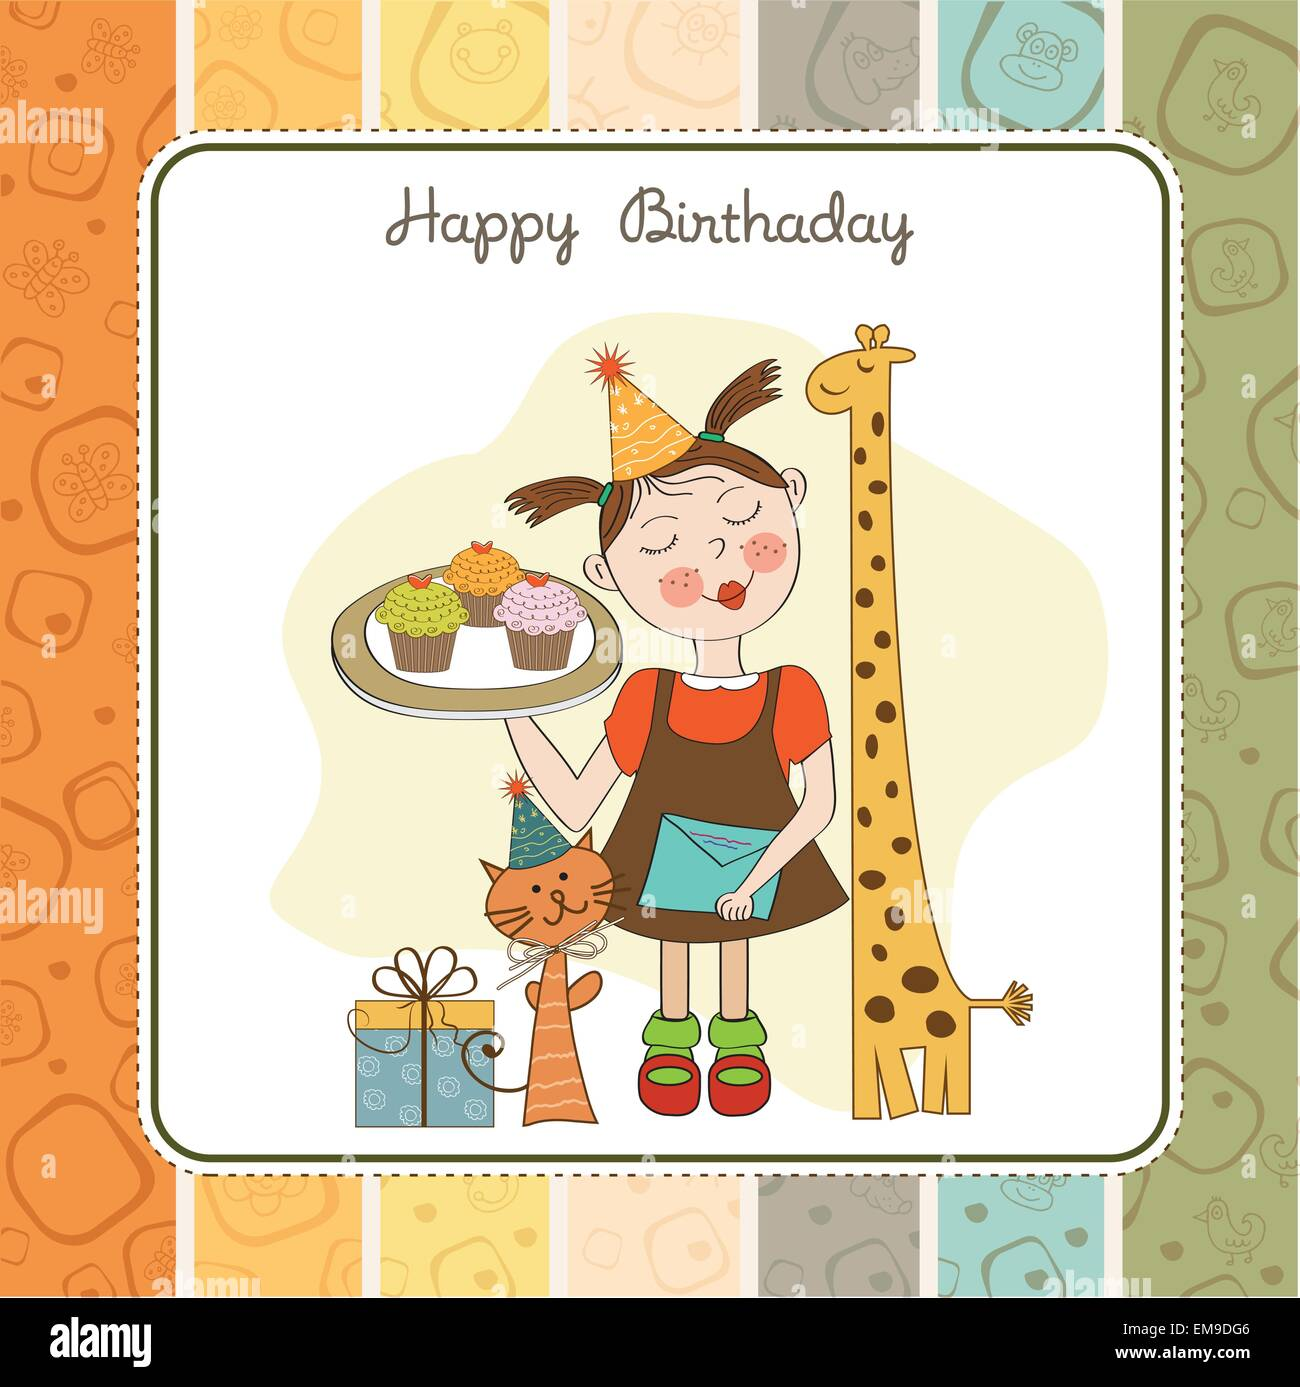 Happy Birthday Card With Funny Girl Animals And Cupcakes